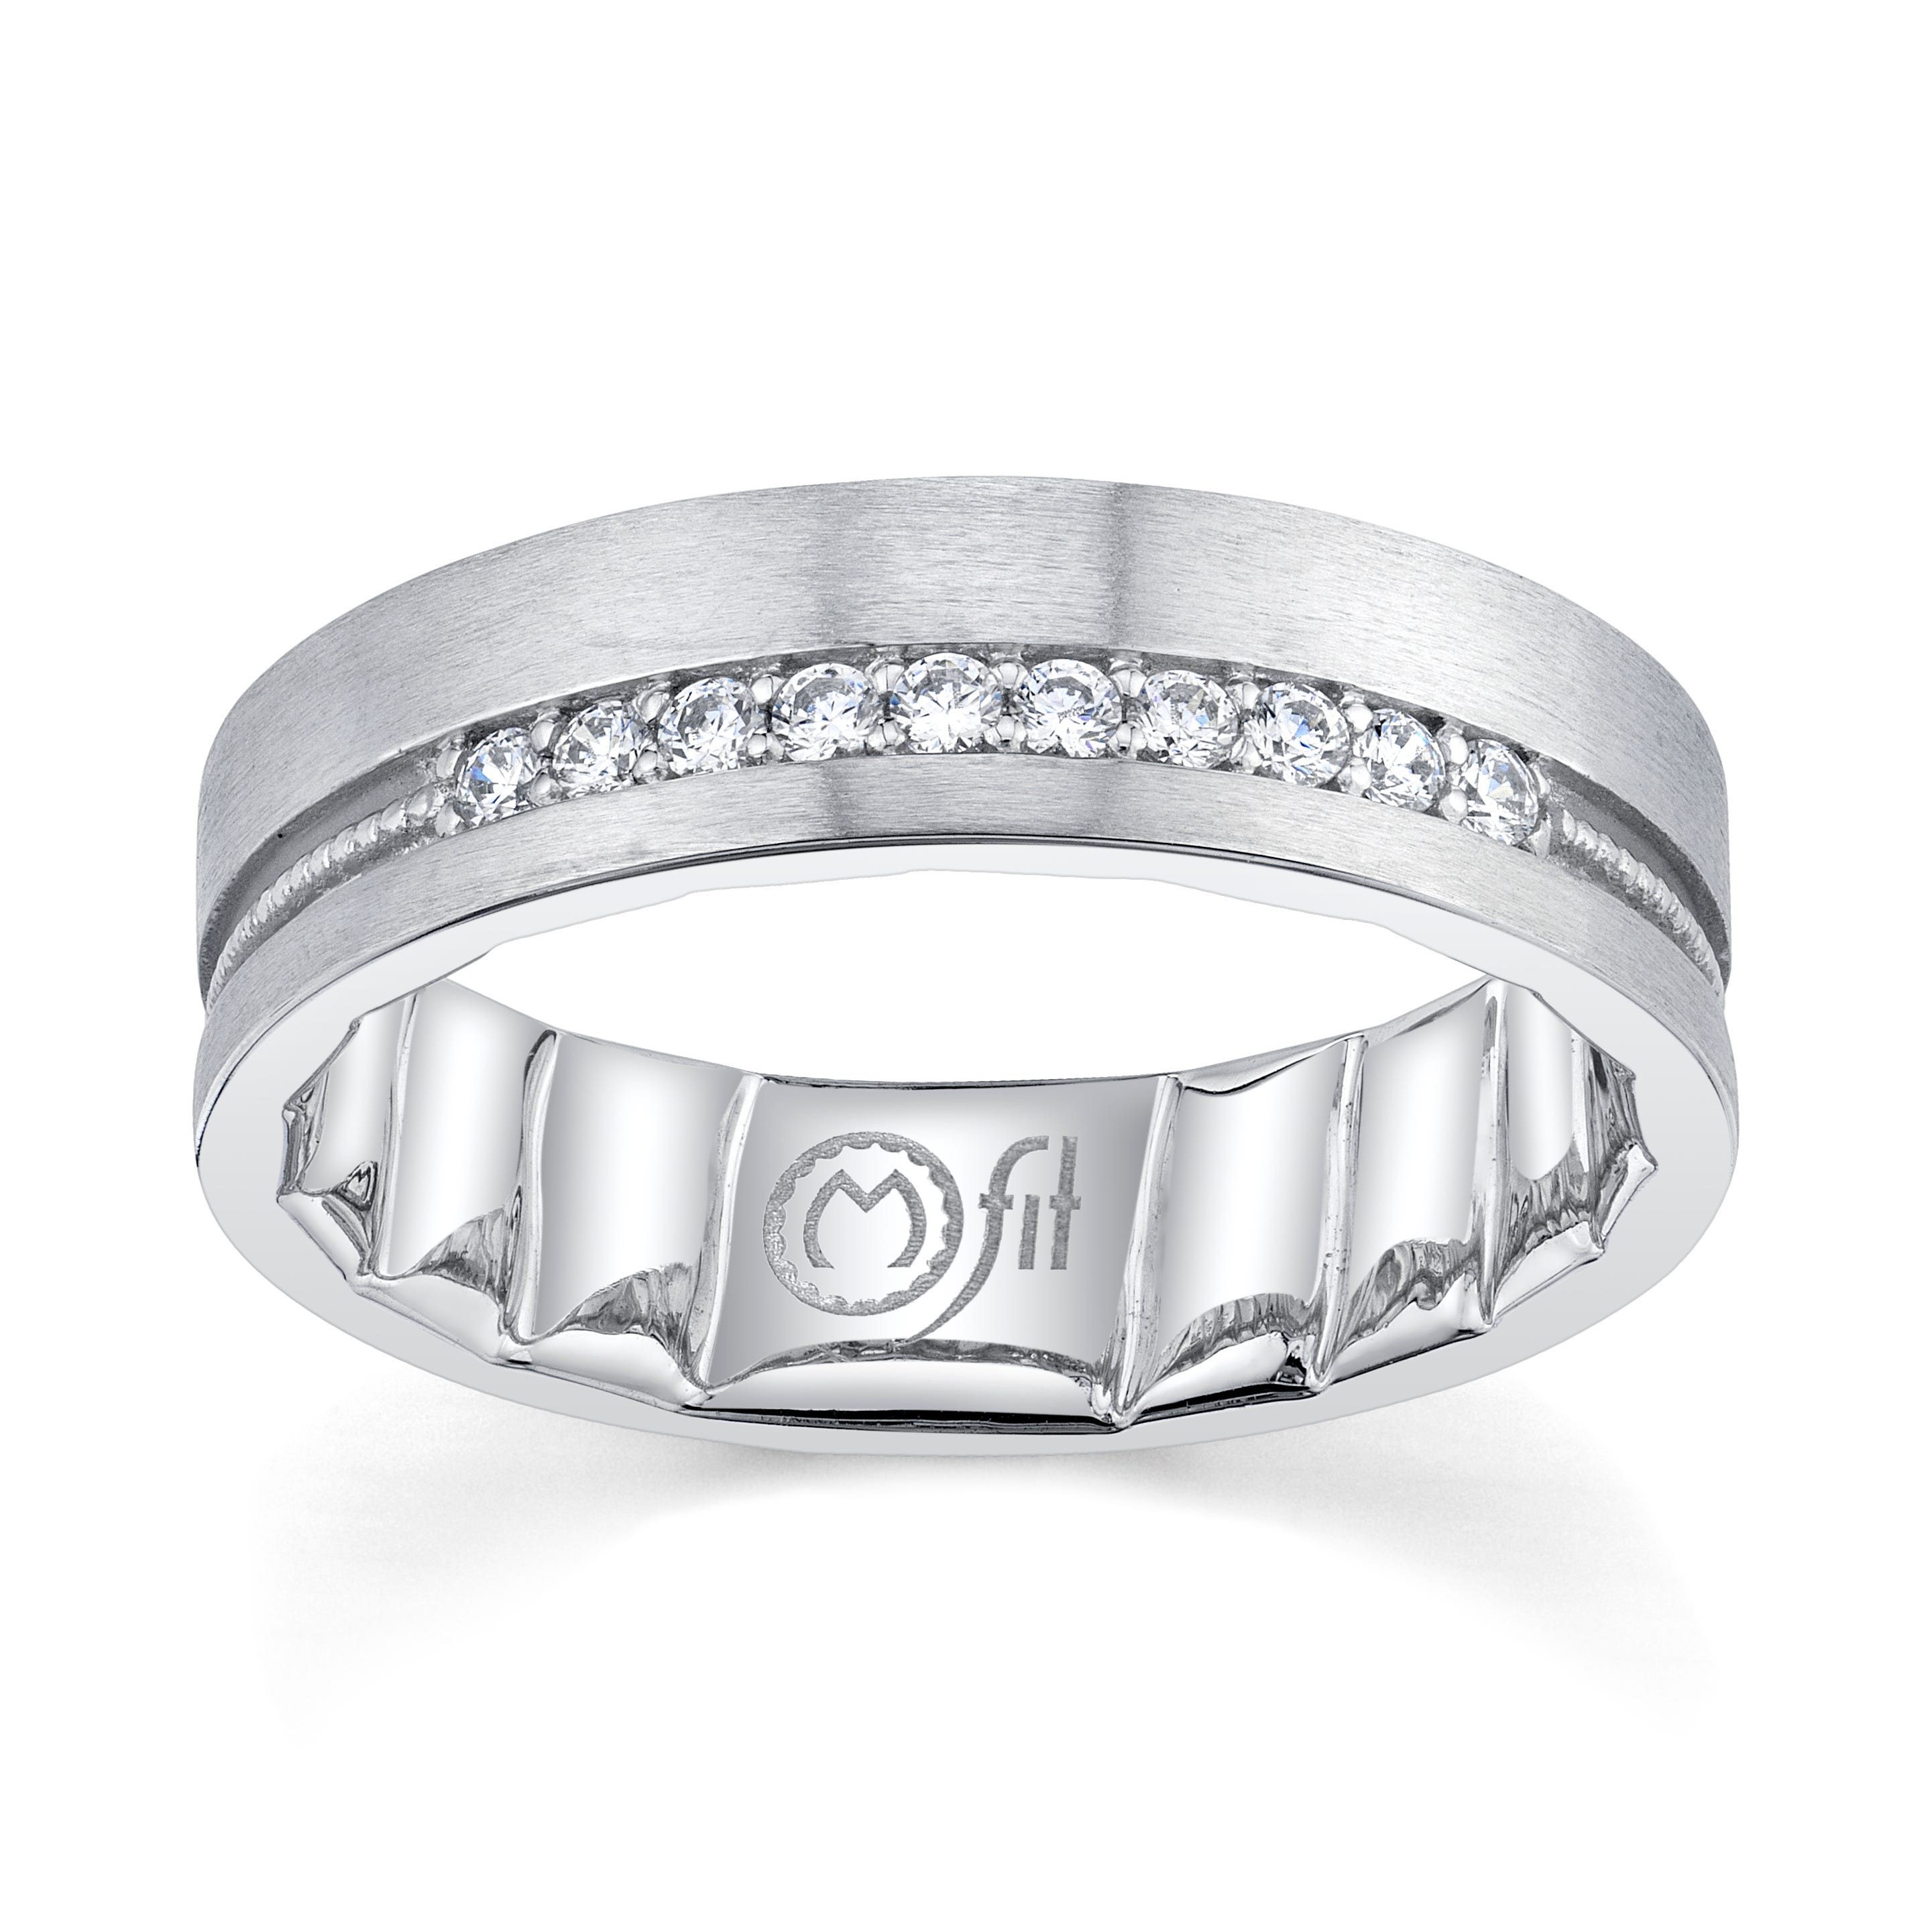 Men's MFIT Diamond 1/7ctw. Comfort Fit Band in 10k White Gold